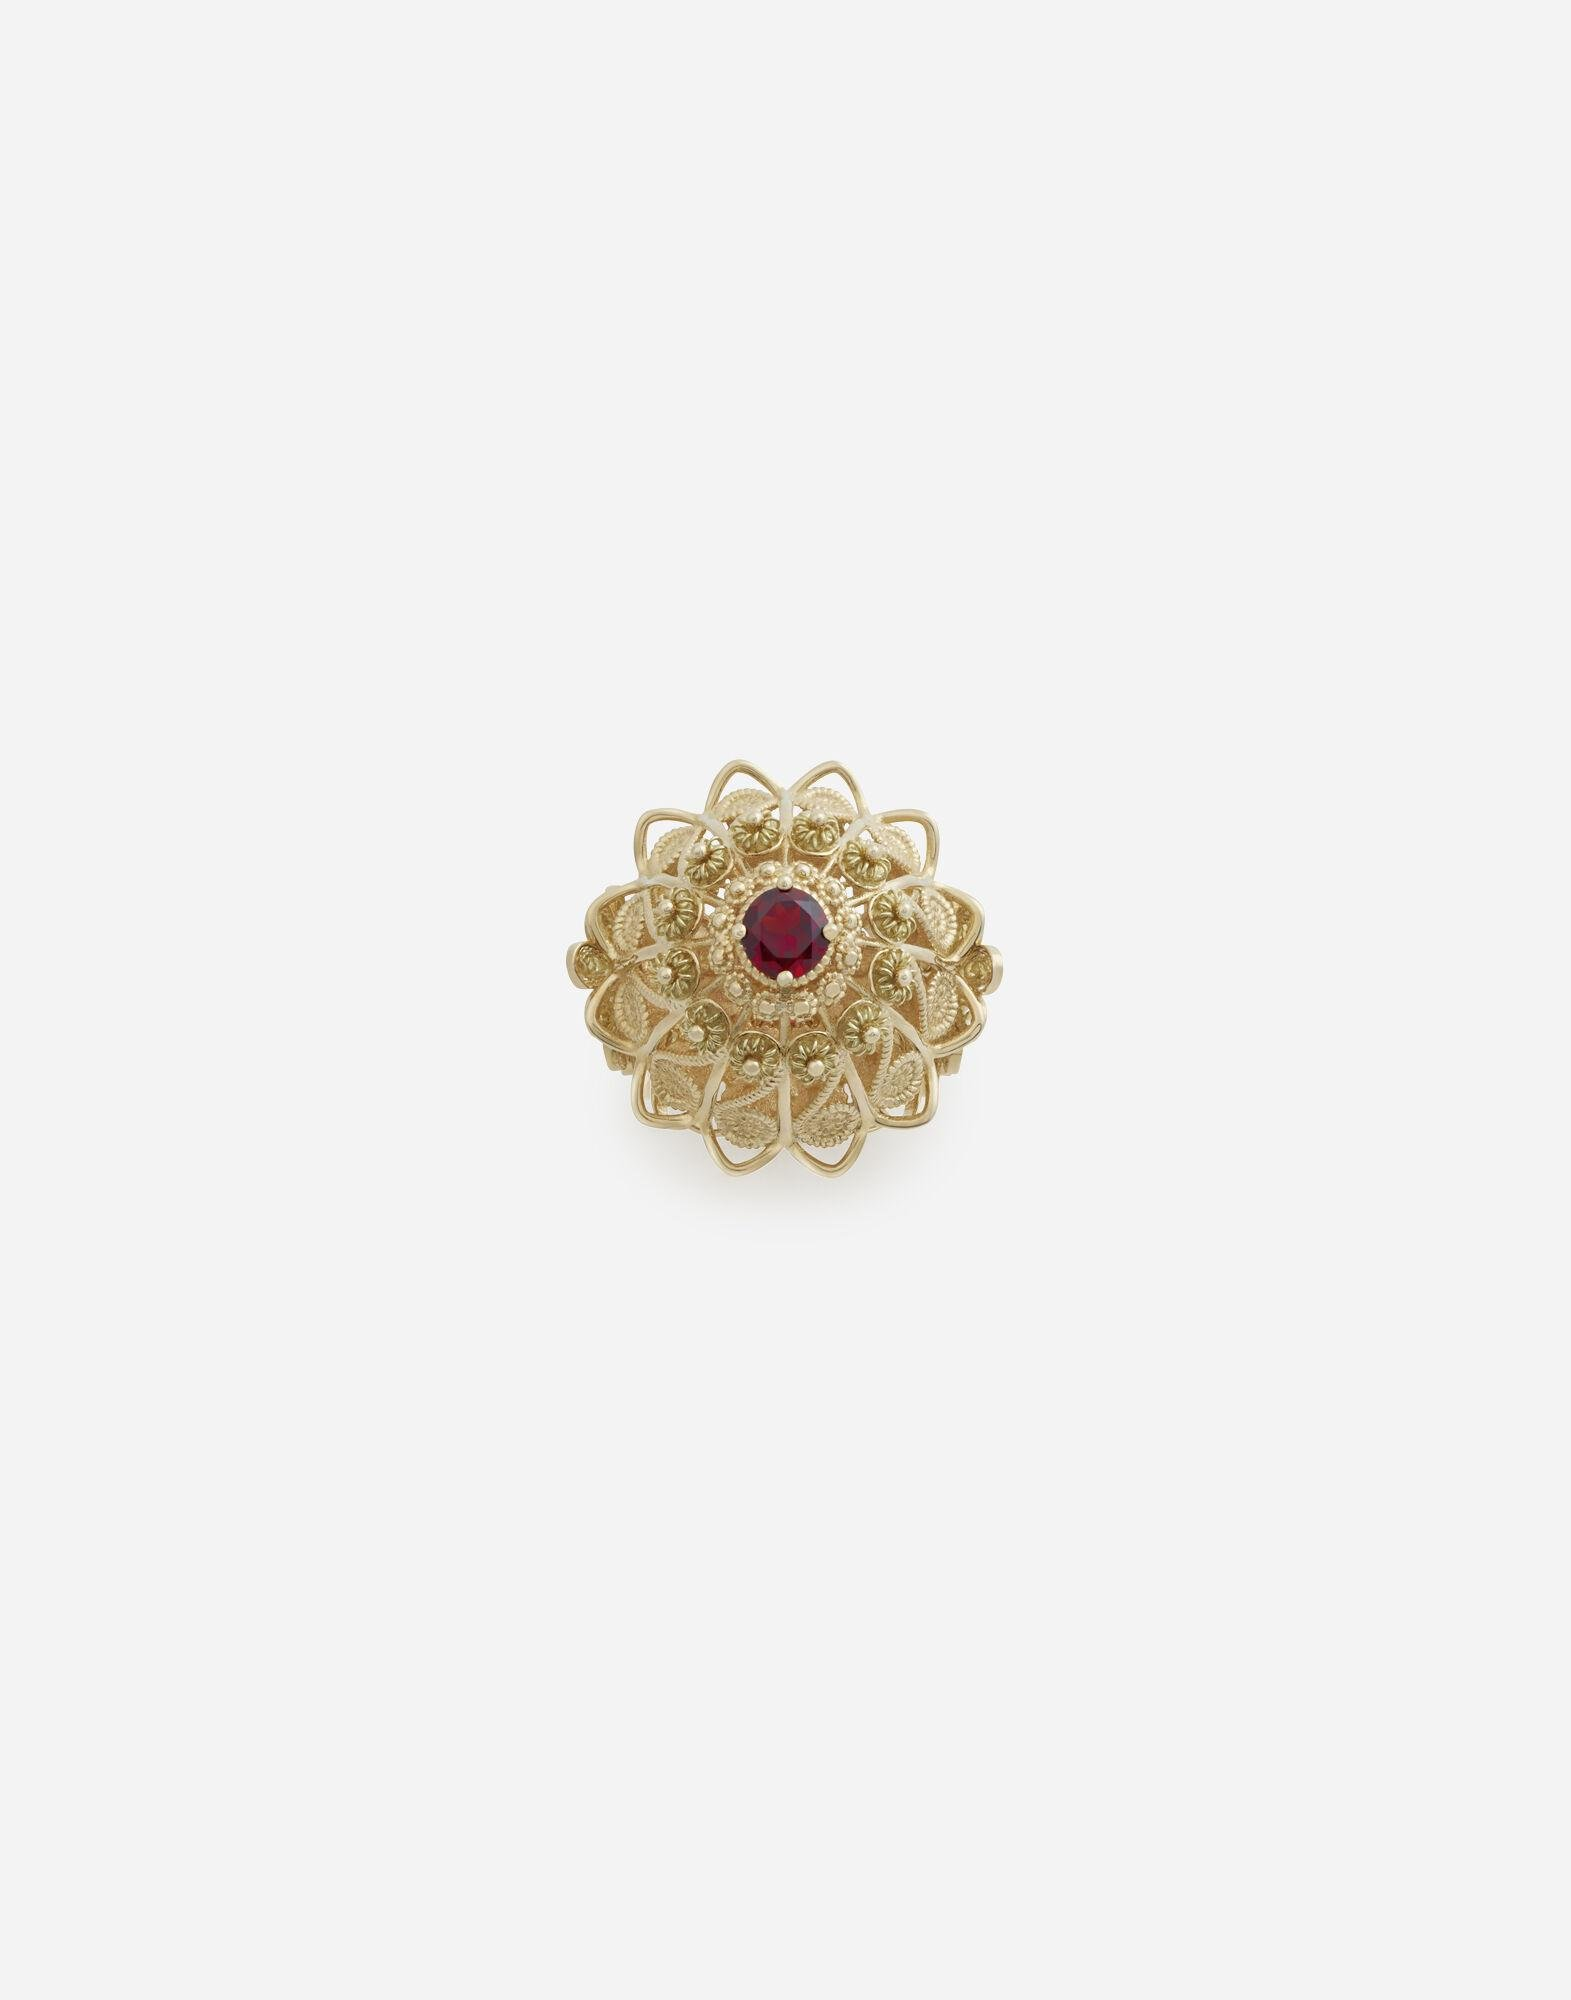 Pizzo ring in yellow gold and rhodolite garnet